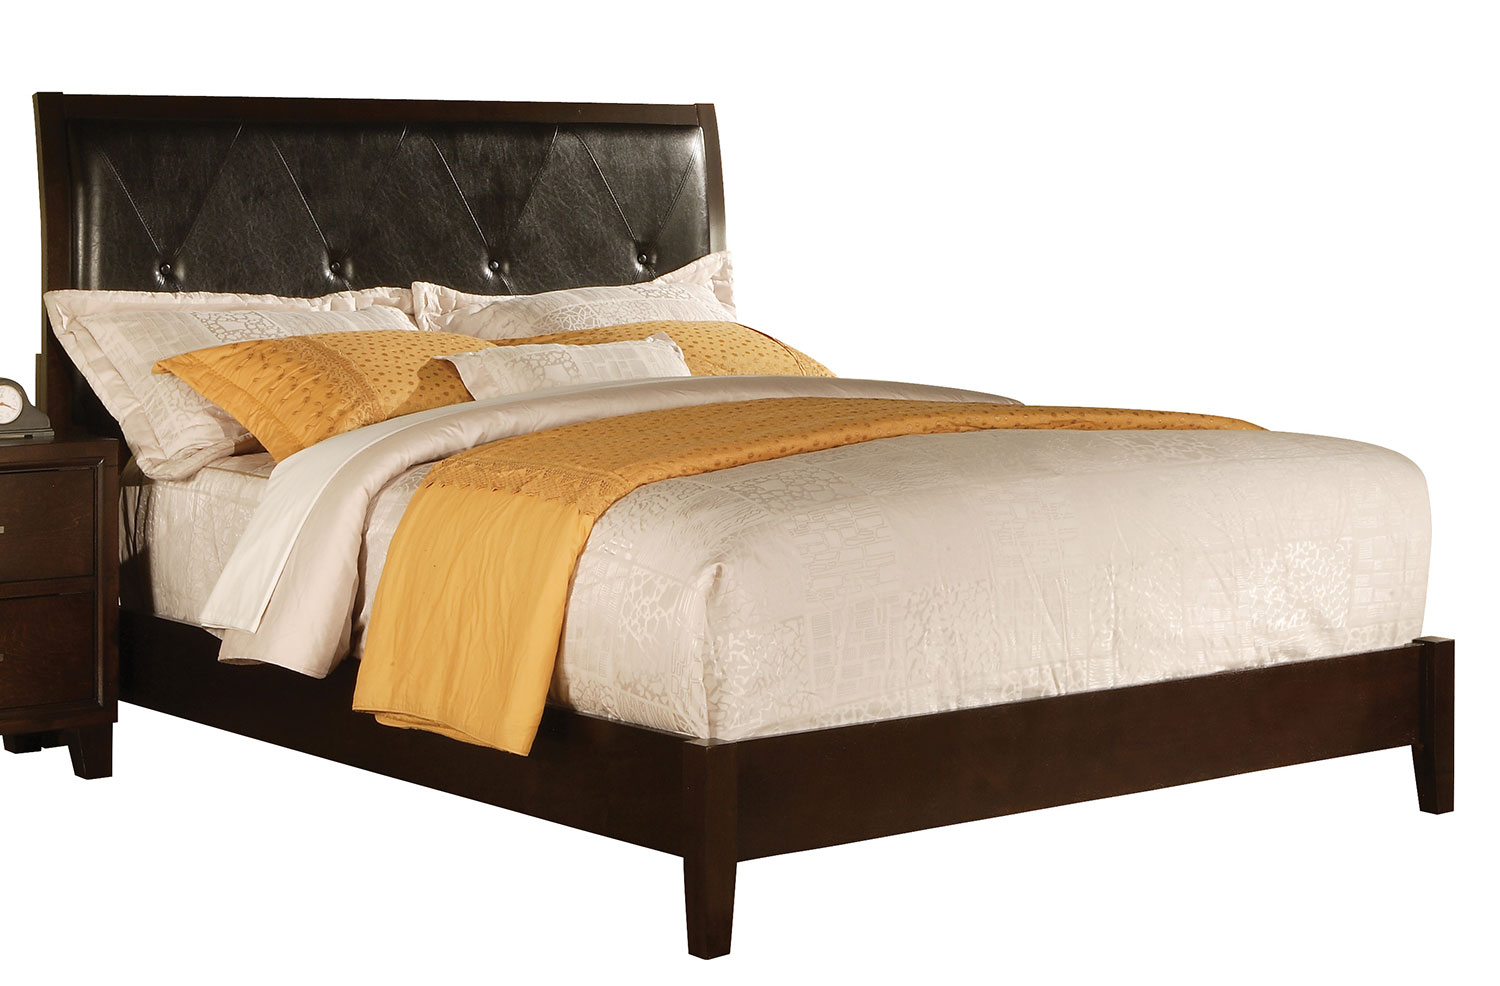 Acme Tyler Bed (Padded HB) - Black Vinyl/Cappuccino